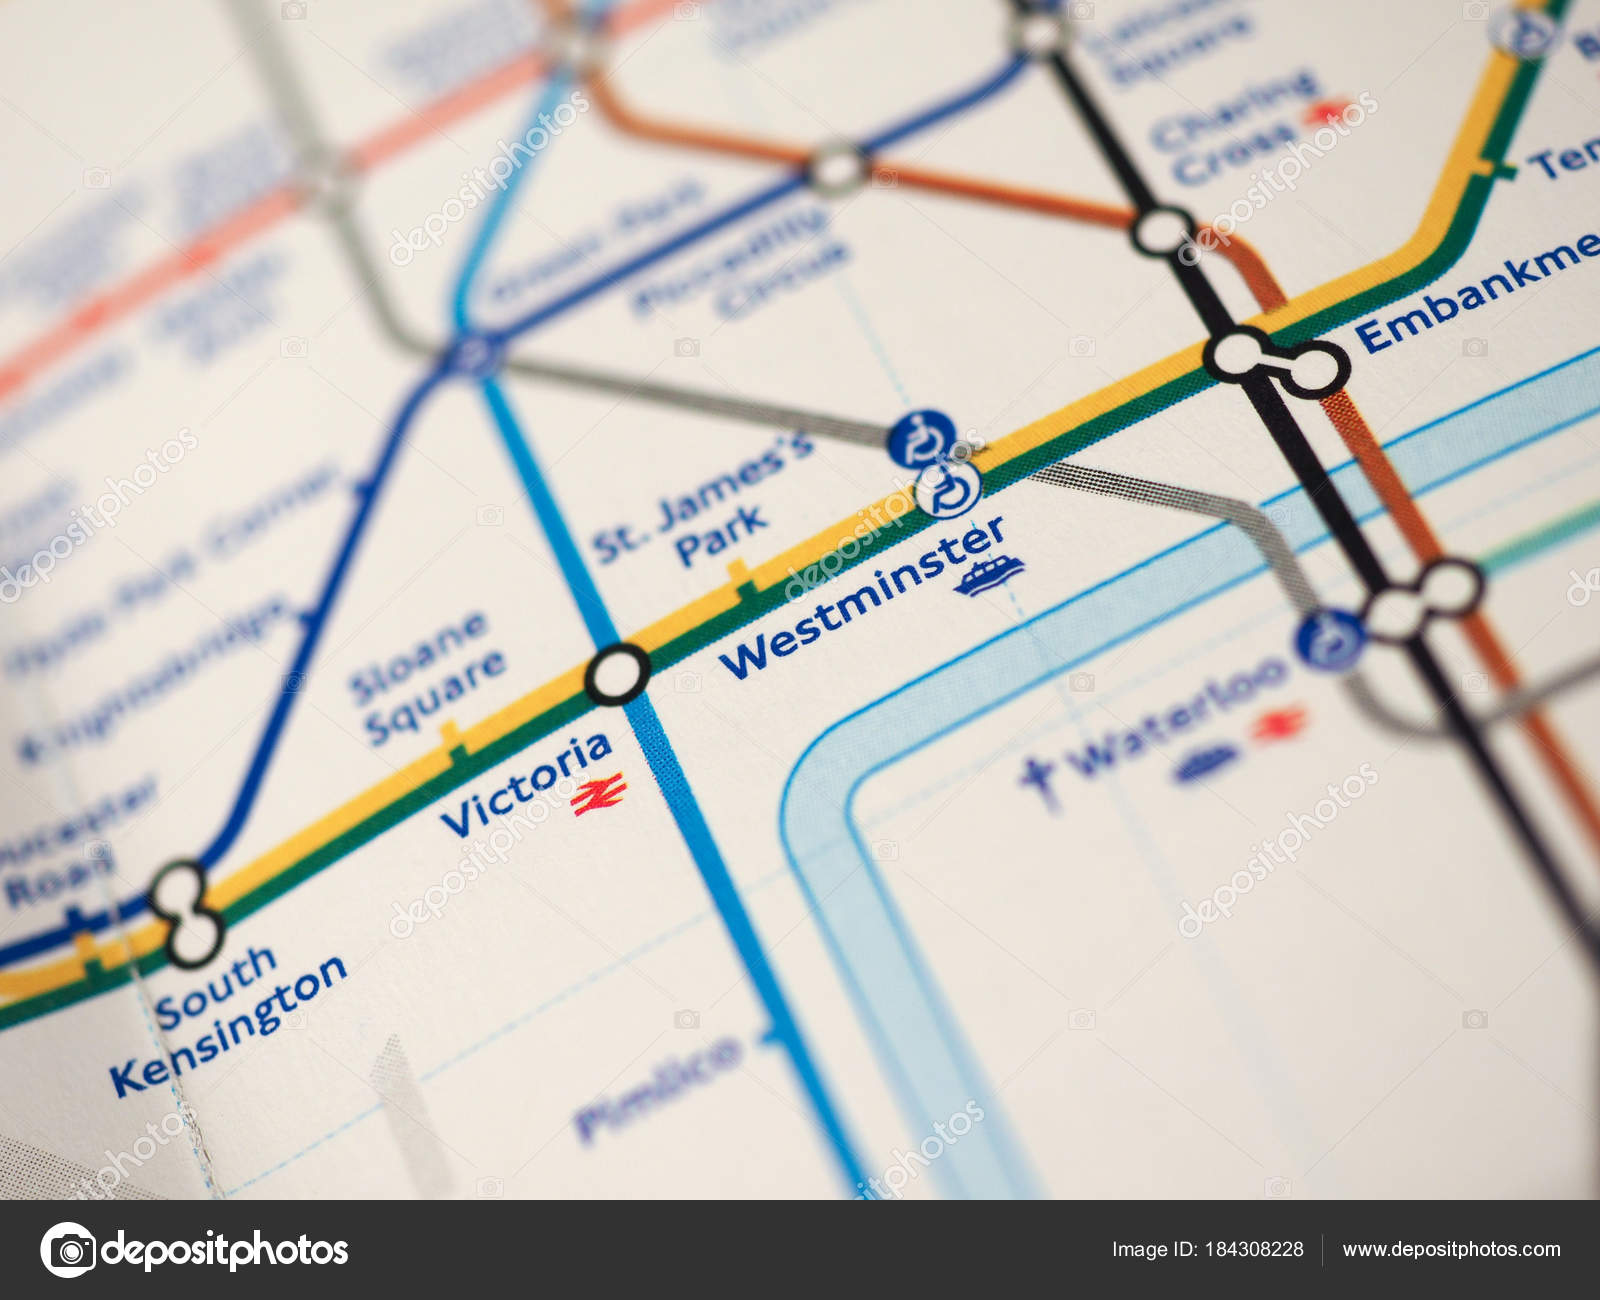 London Stations Map.Map Of London Underground Stock Editorial Photo C Claudiodivizia